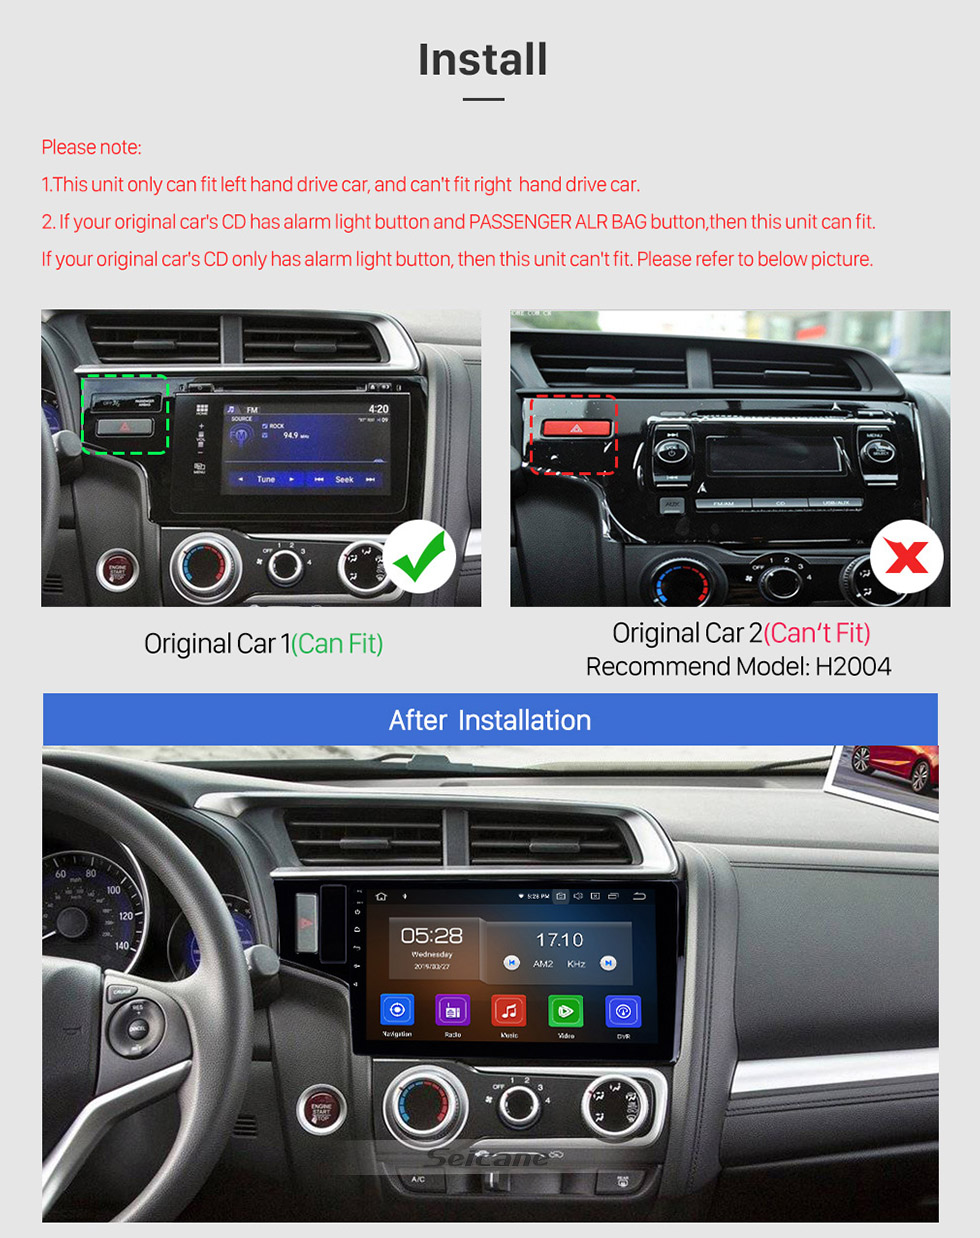 Seicane 10.1 inch Android 10.0 Radio for 2013-2015 Honda Fit LHD With AUX Bluetooth Touchscreen GPS Navigation Carplay support SWC